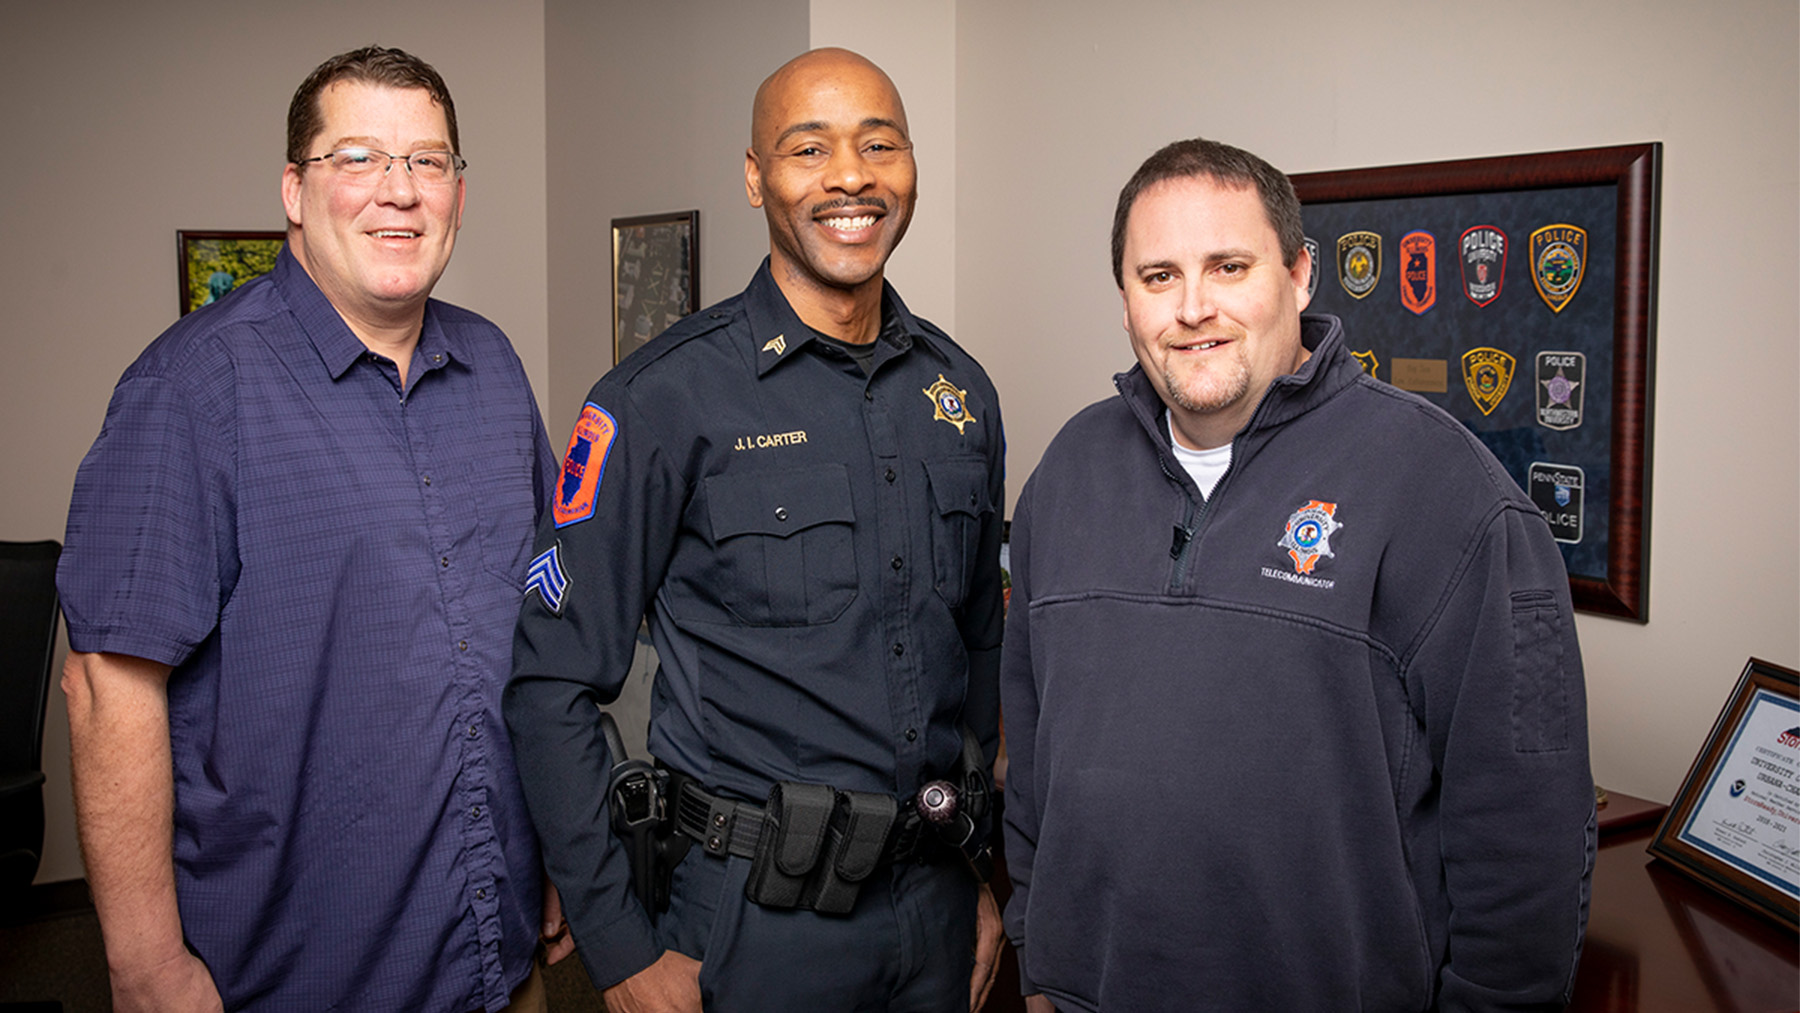 Det. Eric Stiverson, Sgt. James Carter and telecommunicator Kenny Costa. Photo by Fred Zwicky